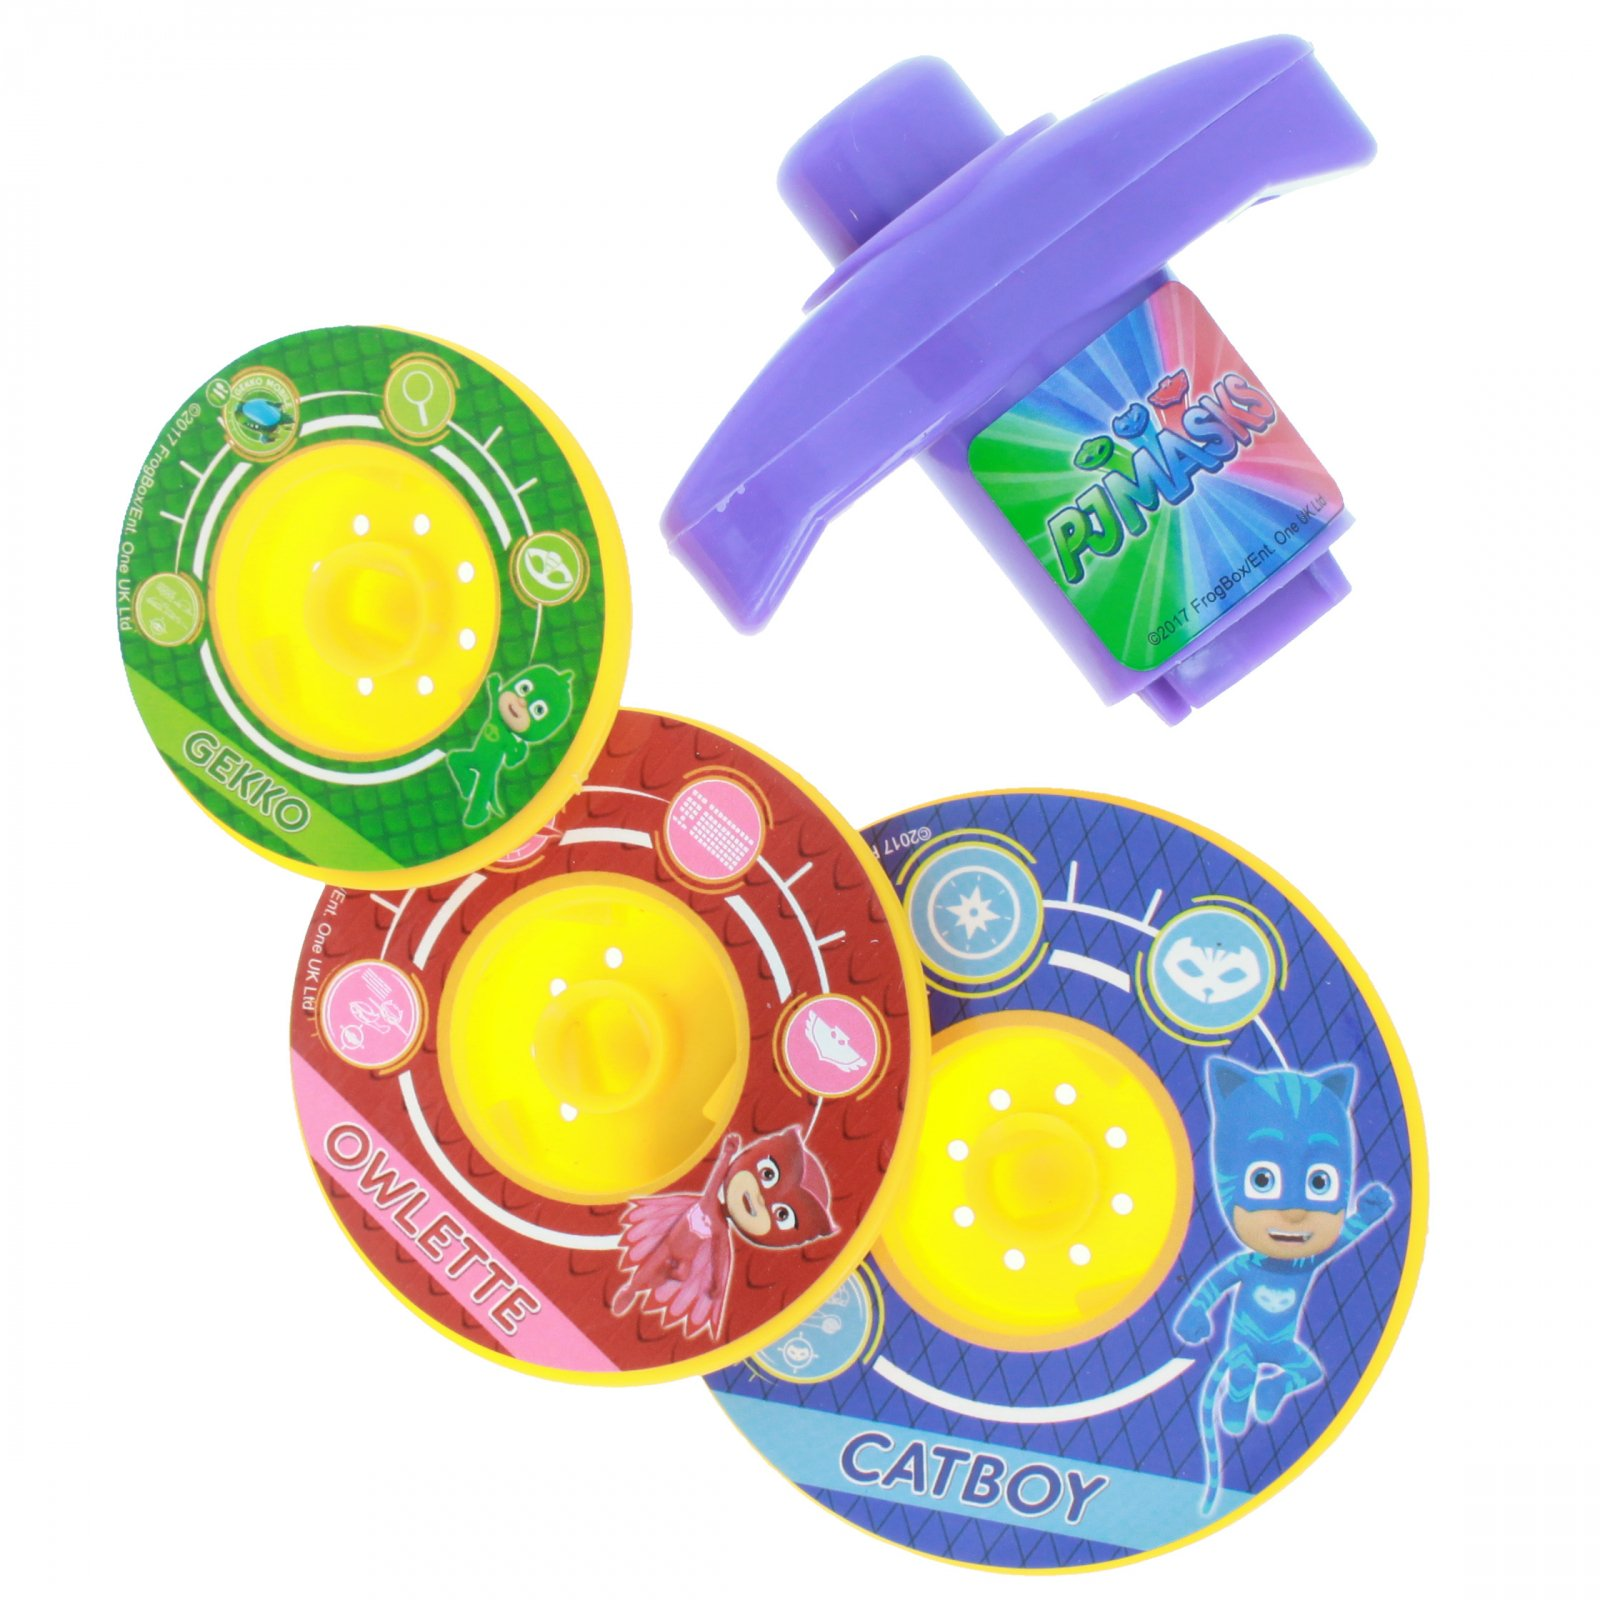 Disney Jr - PJ Masks Spinning Tops - 3 Multi Colored tops and a Launcher